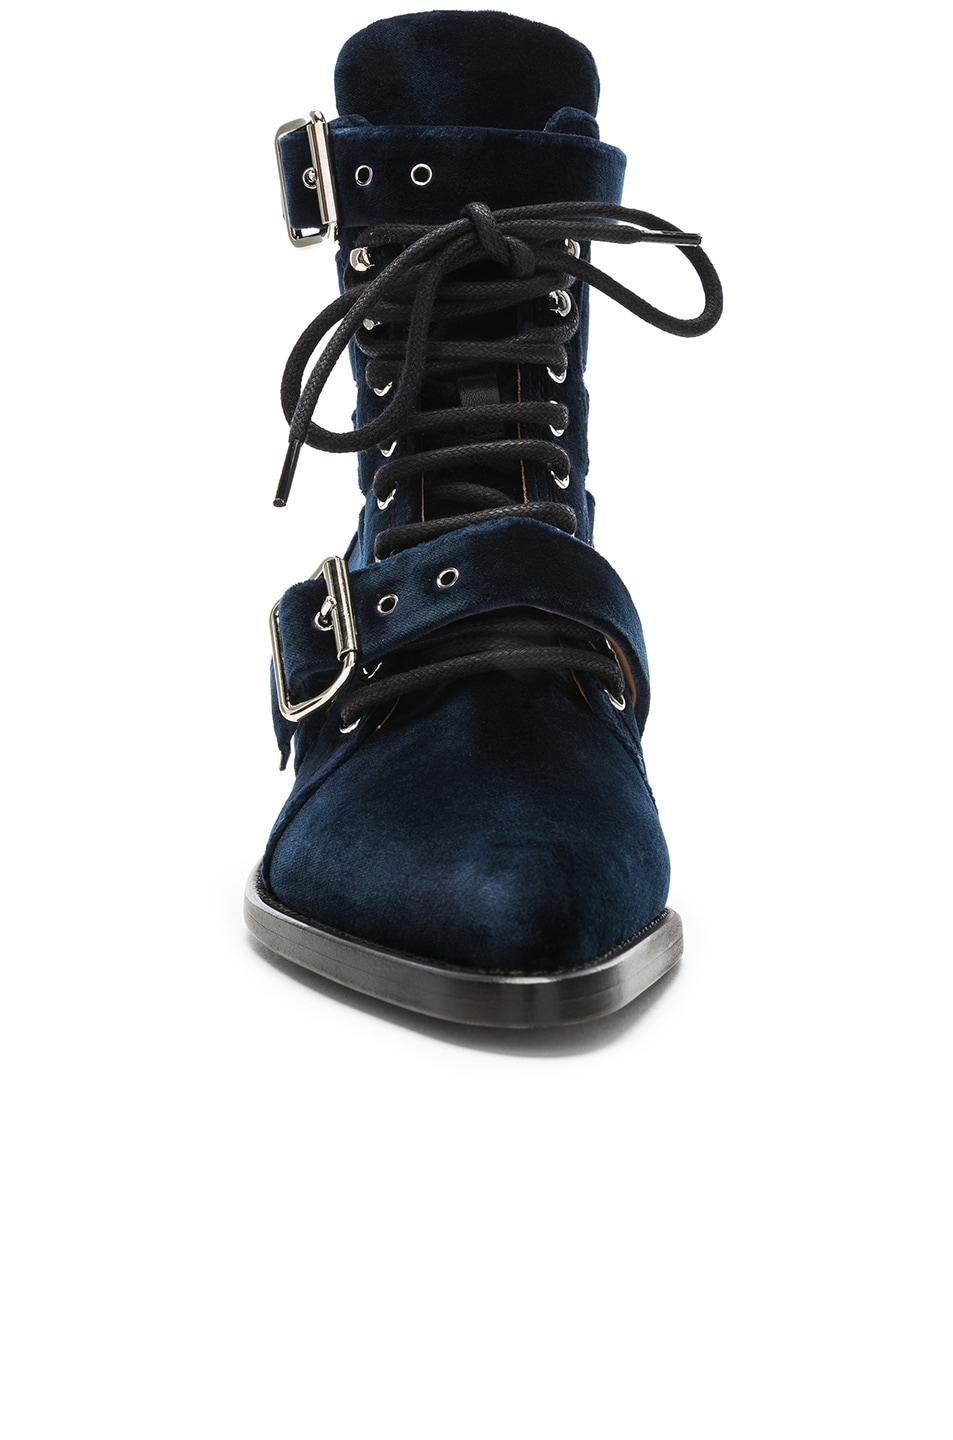 Image 4 of Chloe Rylee Velvet Lace Up Buckle Boots in Blue Lagoon